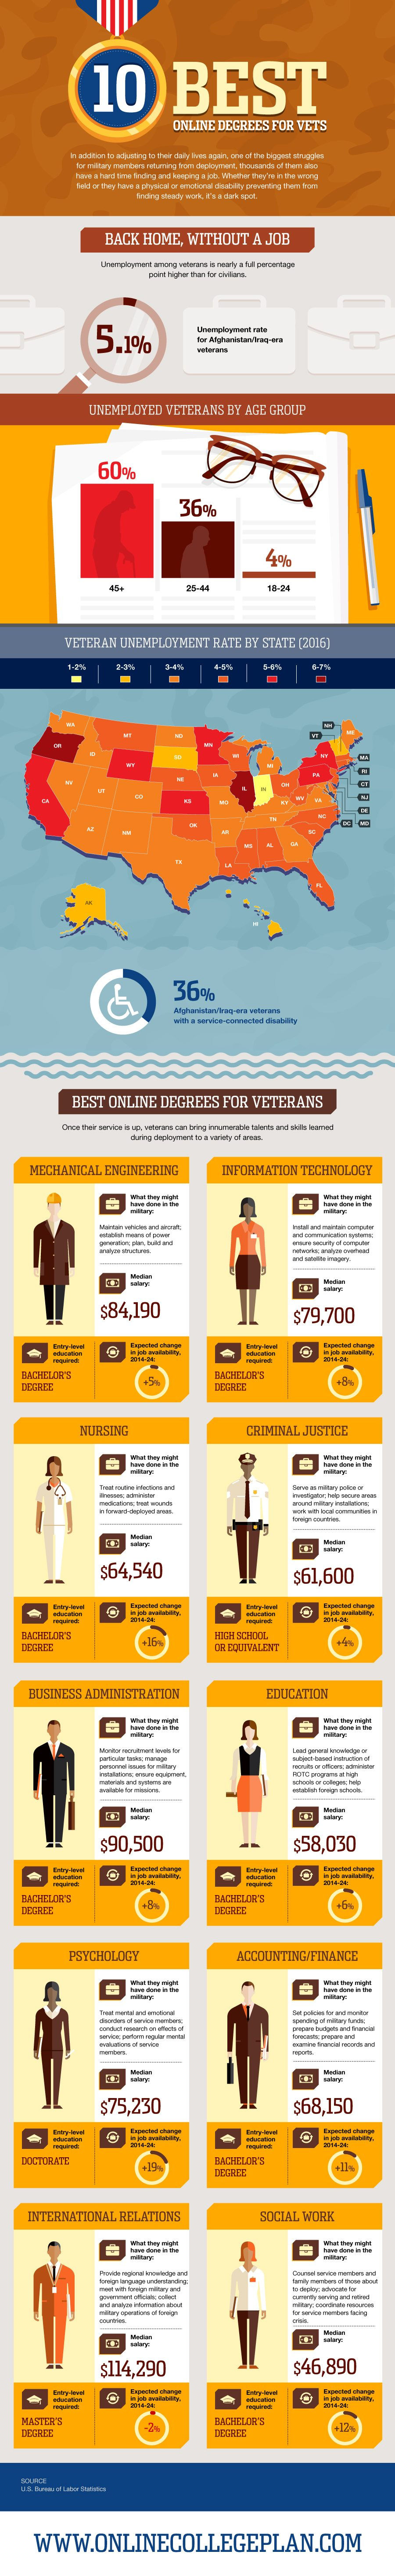 Degrees for Vets - best online college for veterans